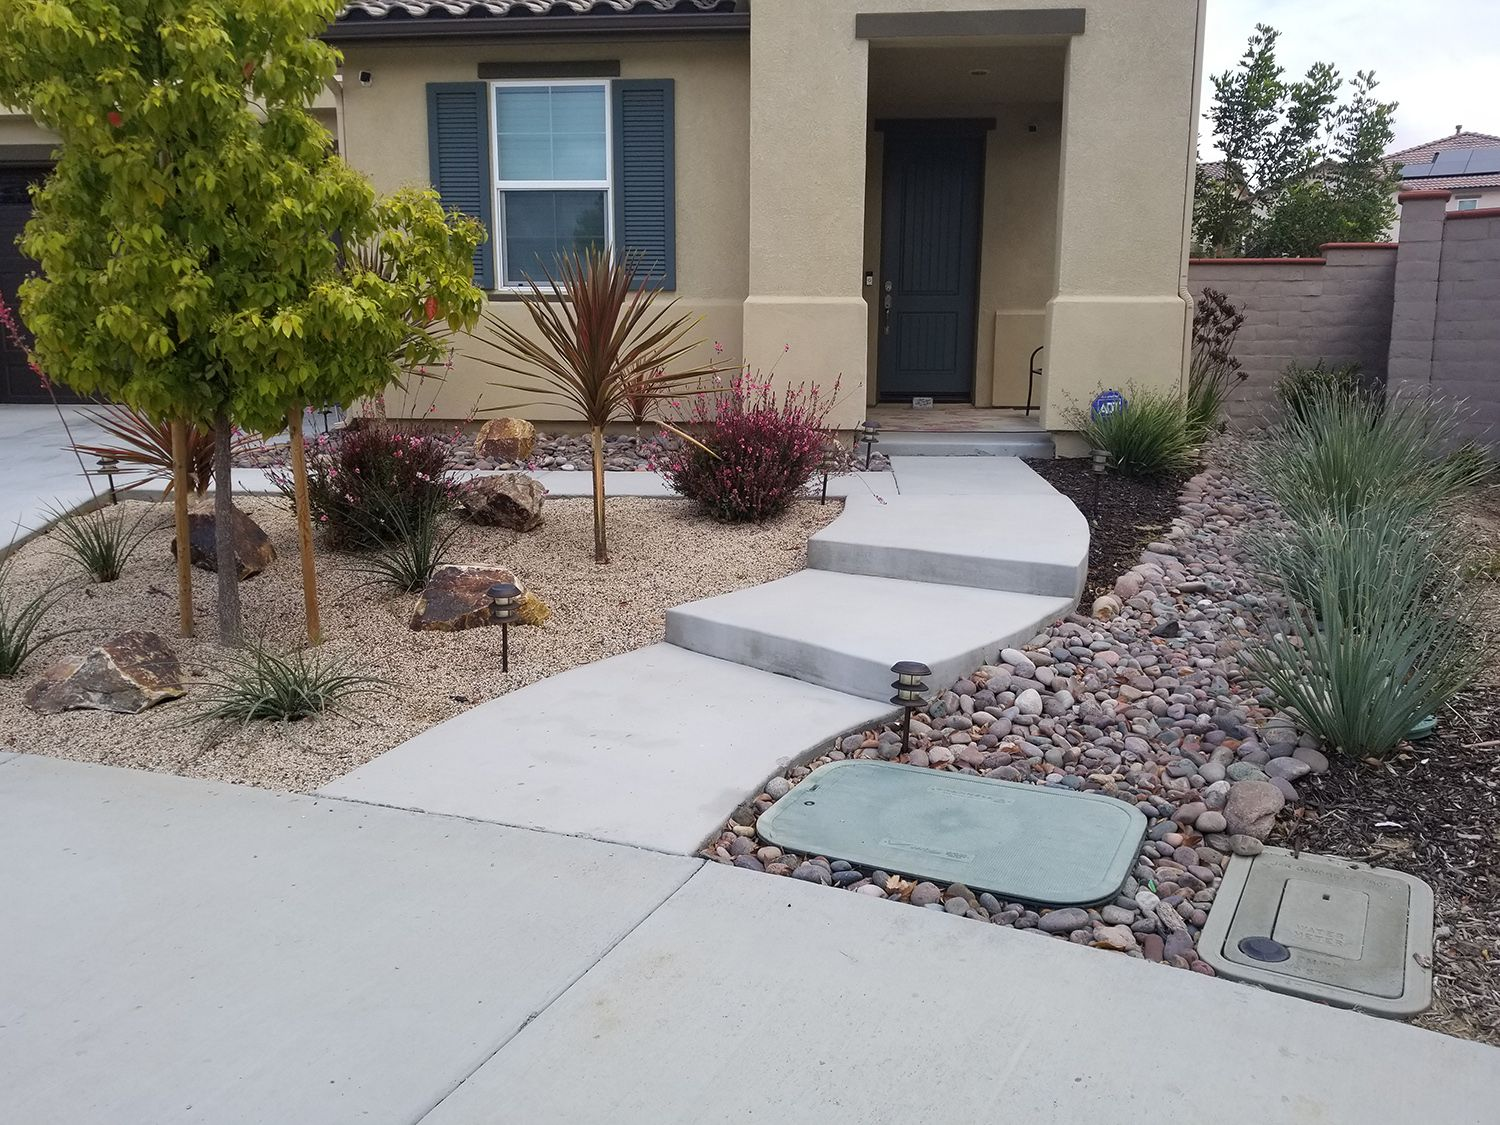 Desert Landscapes Stone Pathway Front Yard Landscaping